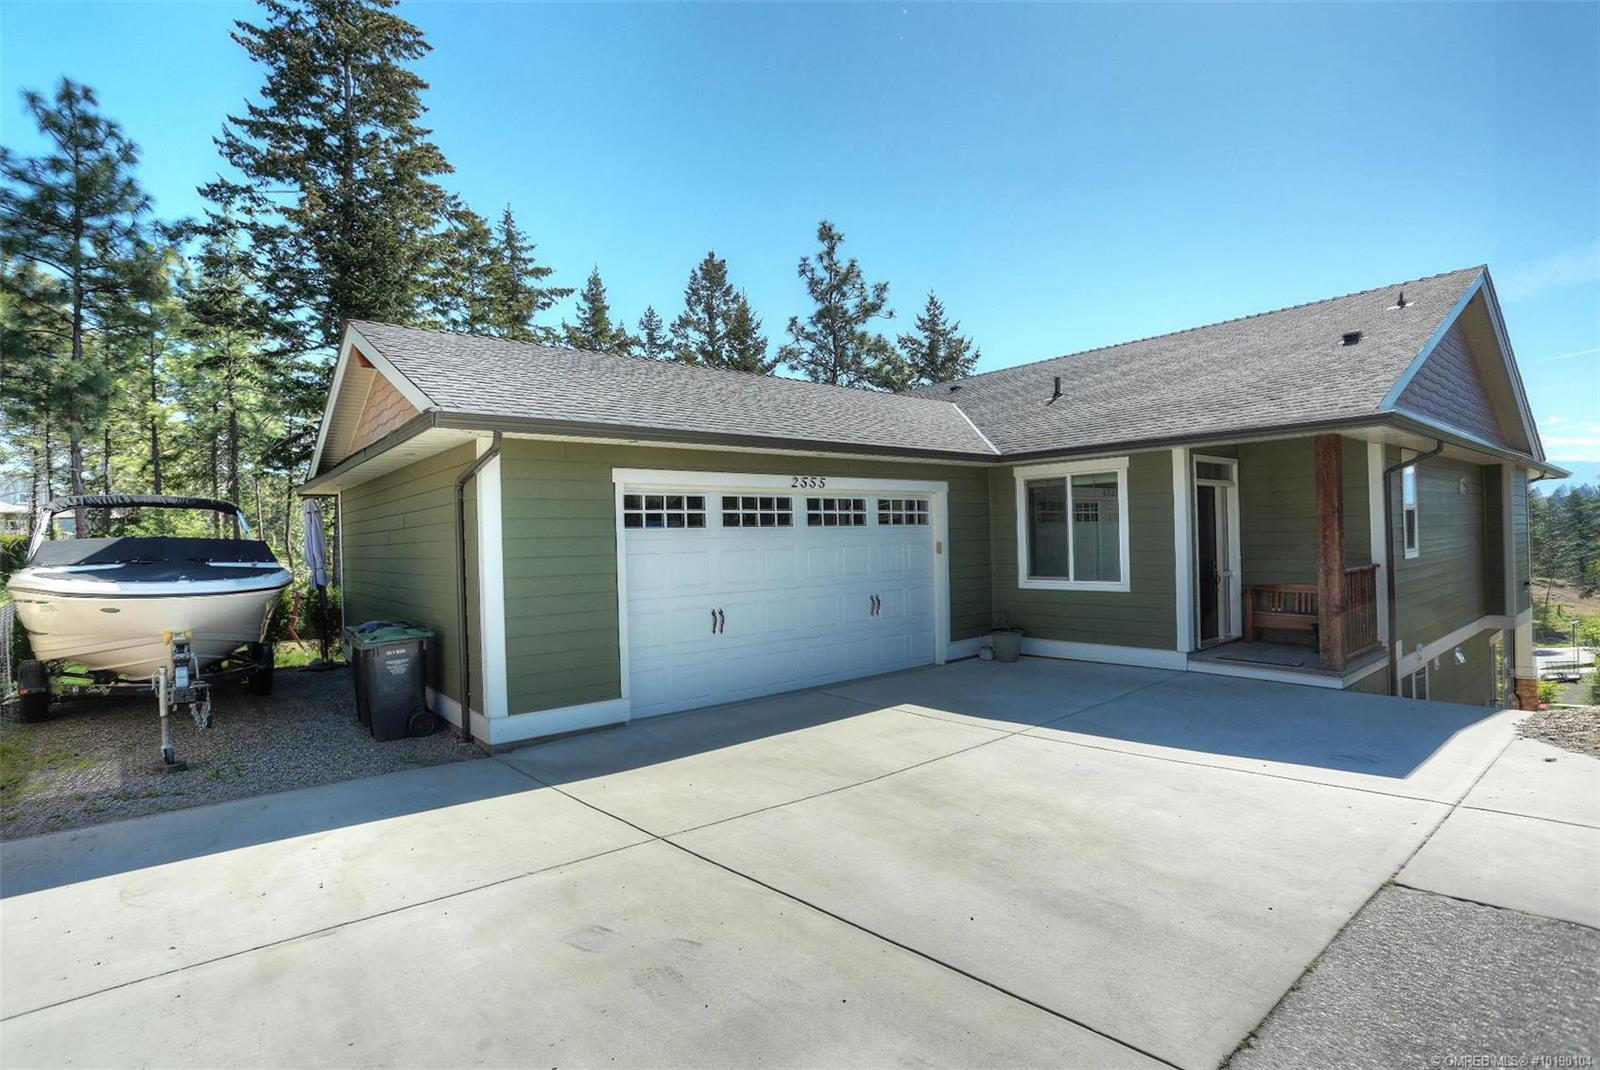 Removed: 2555 Tallus Ridge Drive, West Kelowna, BC - Removed on 2019-10-25 06:27:17